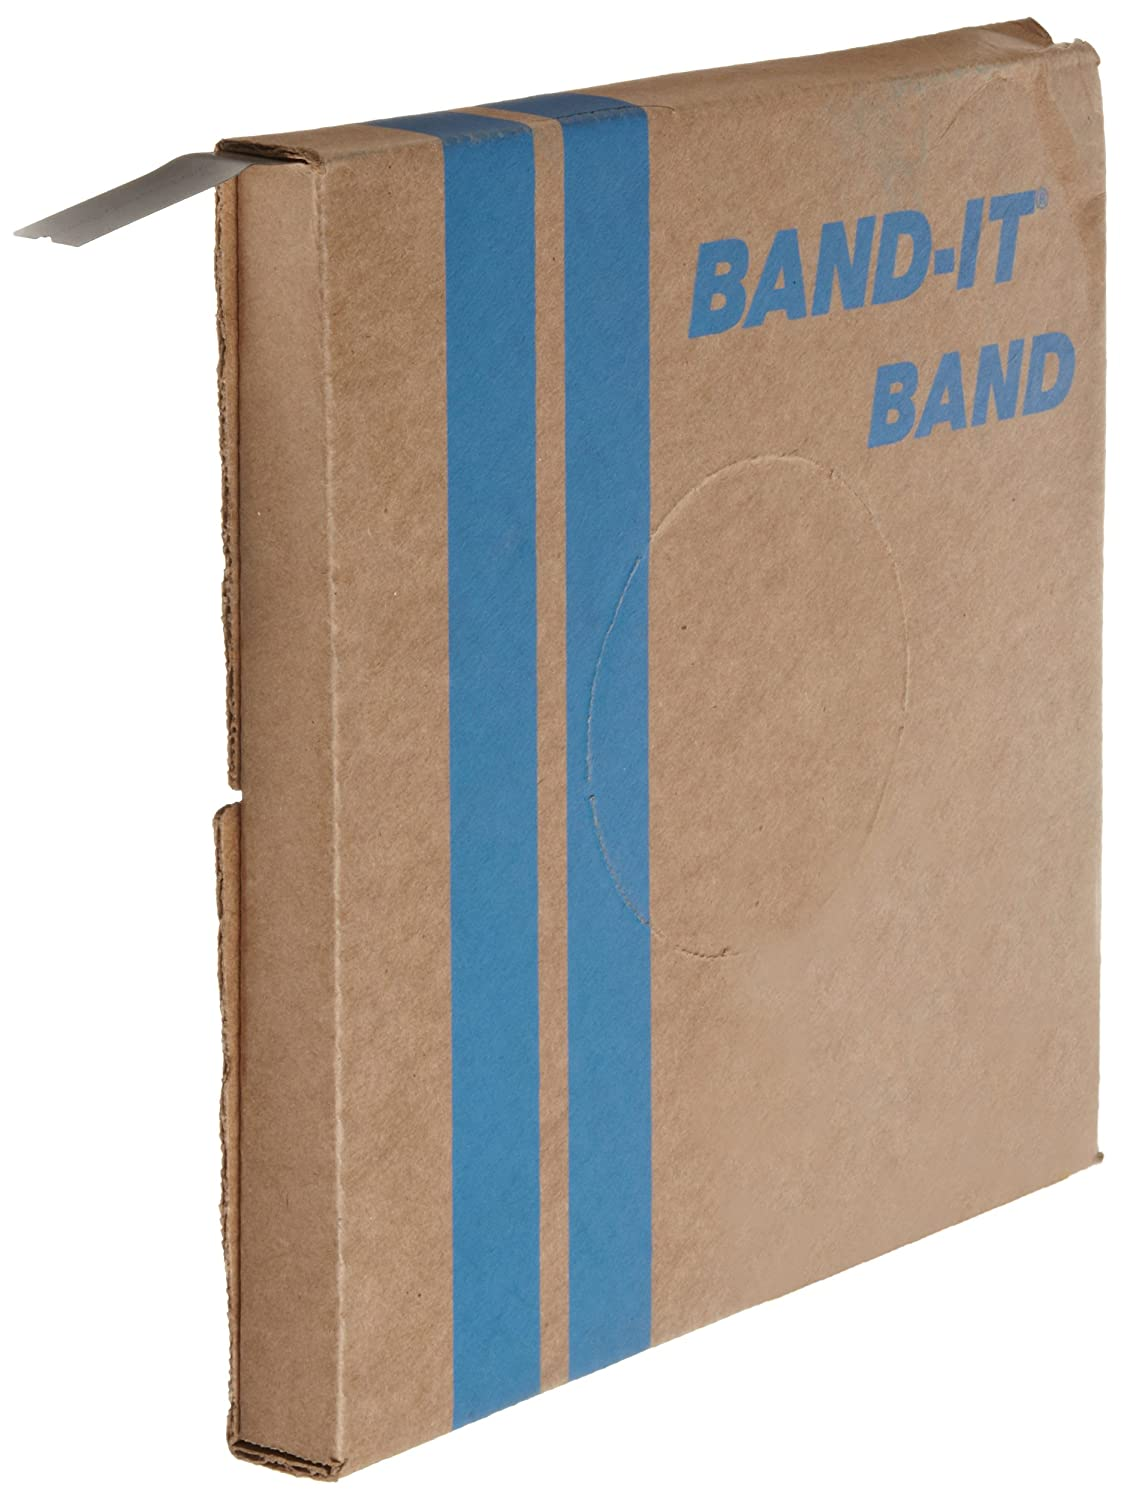 BAND-IT VALU-STRAP Band C13099, 200/300 Stainless Steel, 3/4 wide x 0.015 thick (200 Foot Roll) by Band-It B002LZWBMM